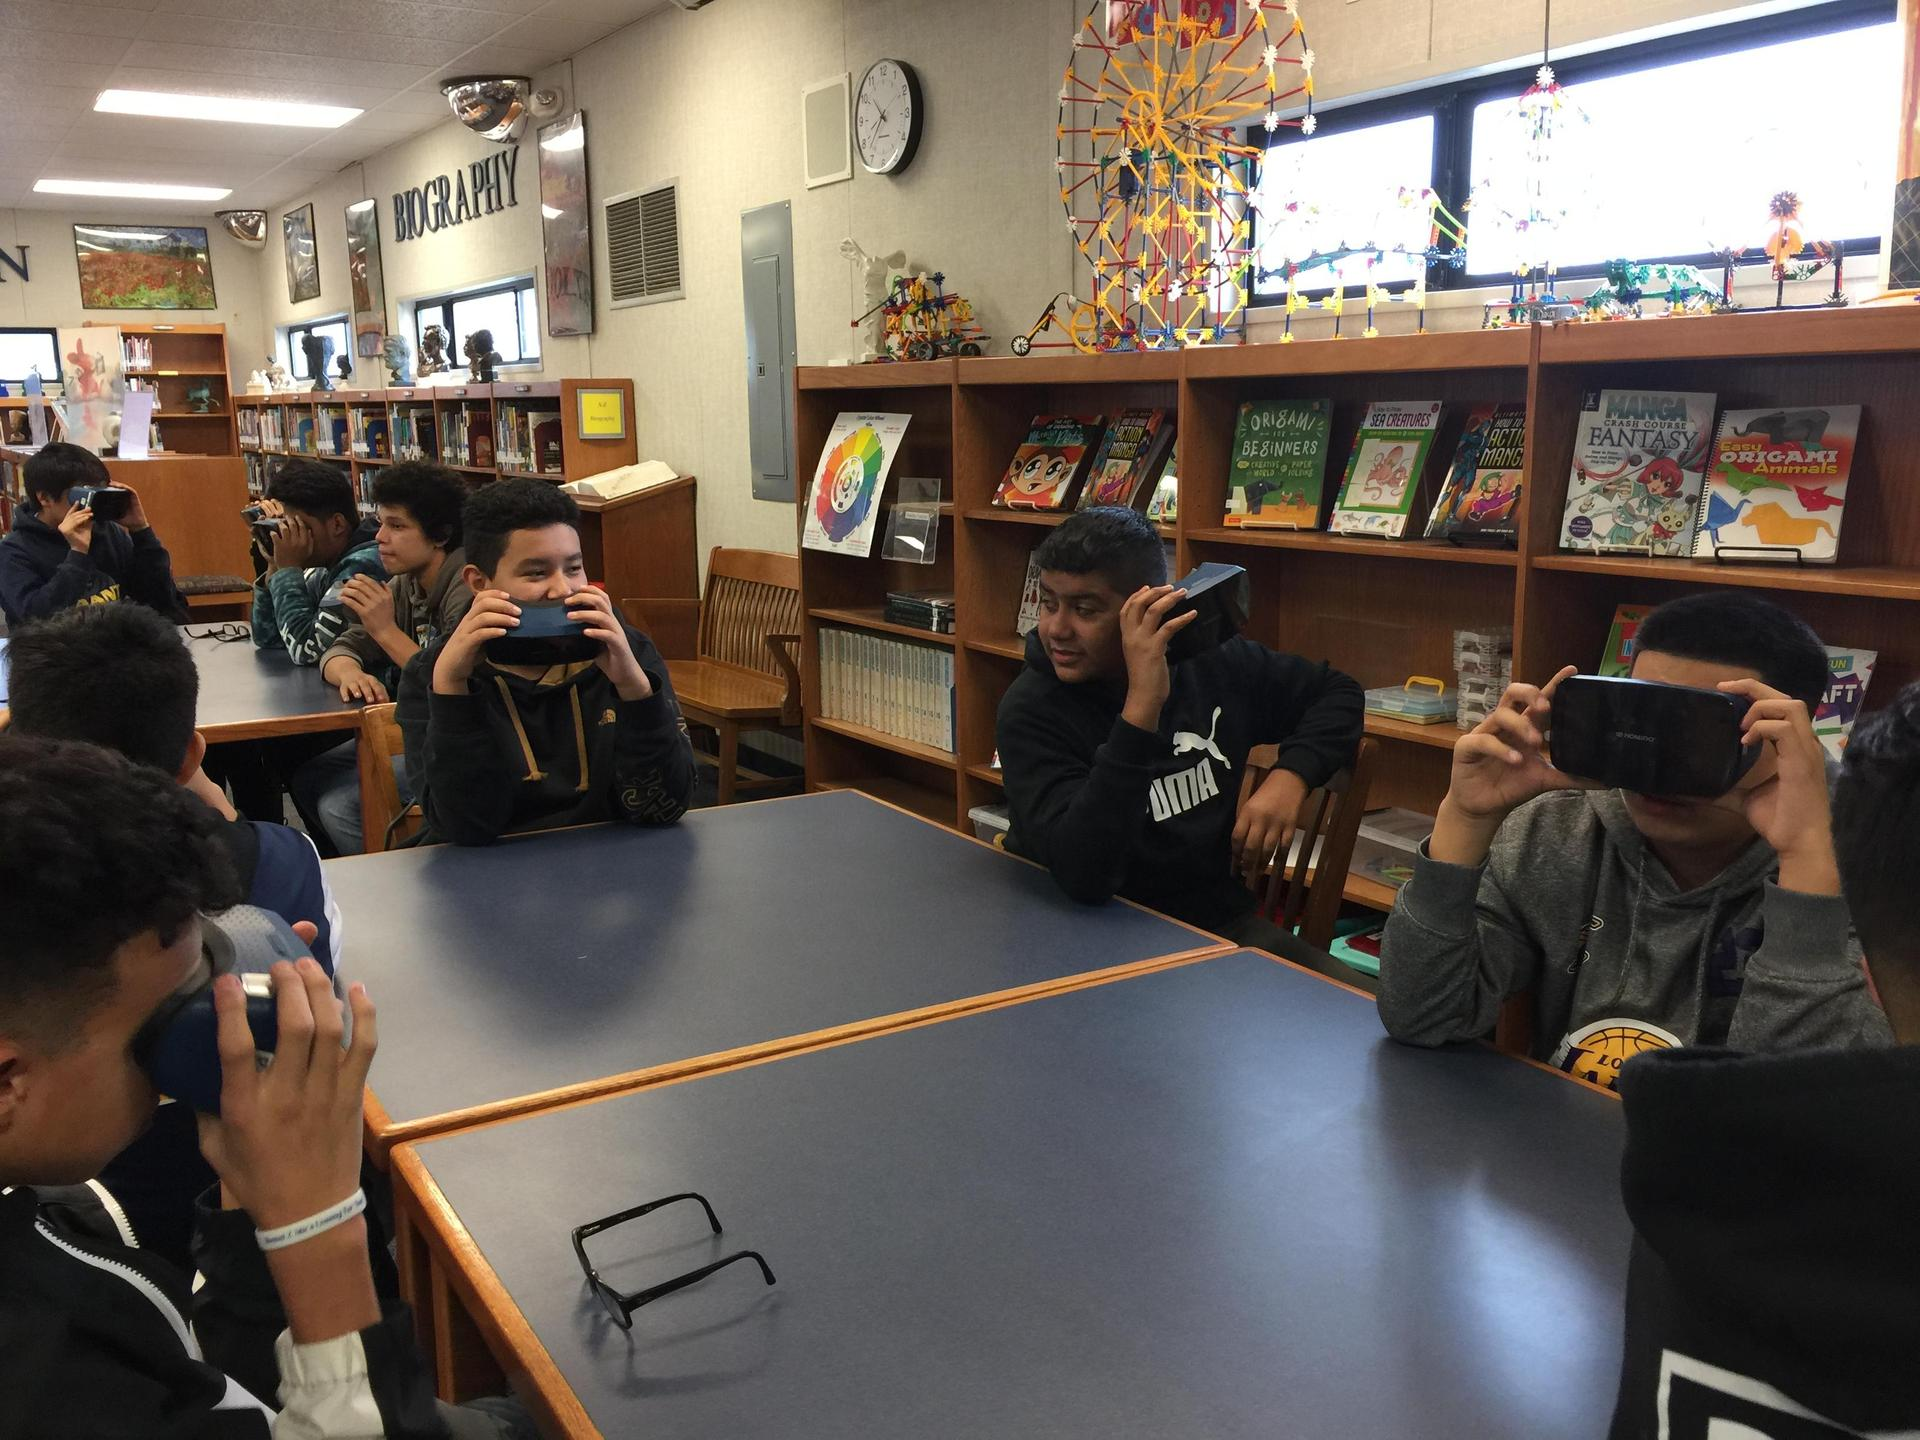 Google Goggles - Mr. Kopper's Science Class in the Library